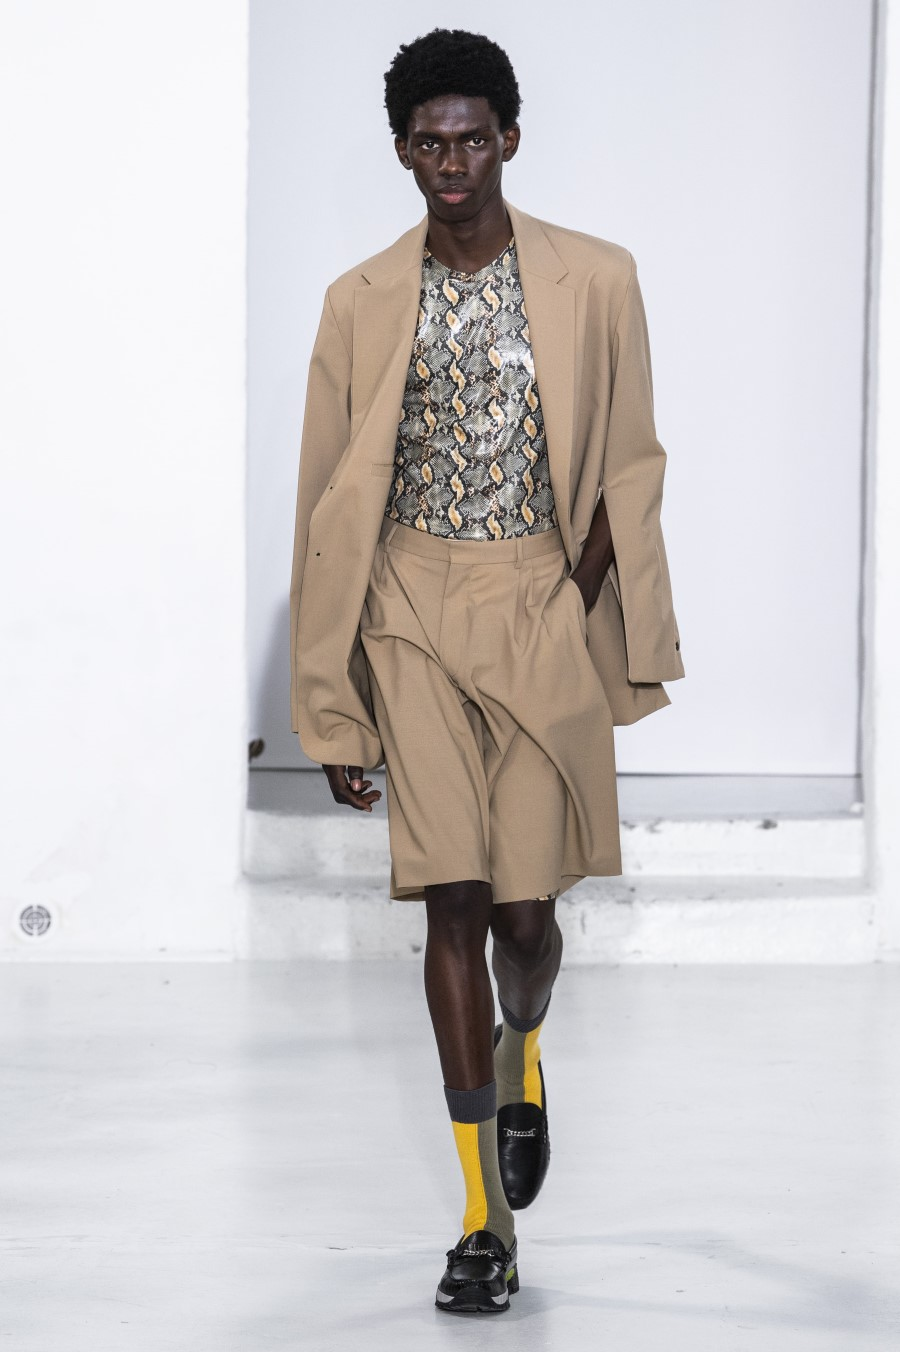 CMMN SWDN - Printemps-Été 2020 - Paris Fashion Week